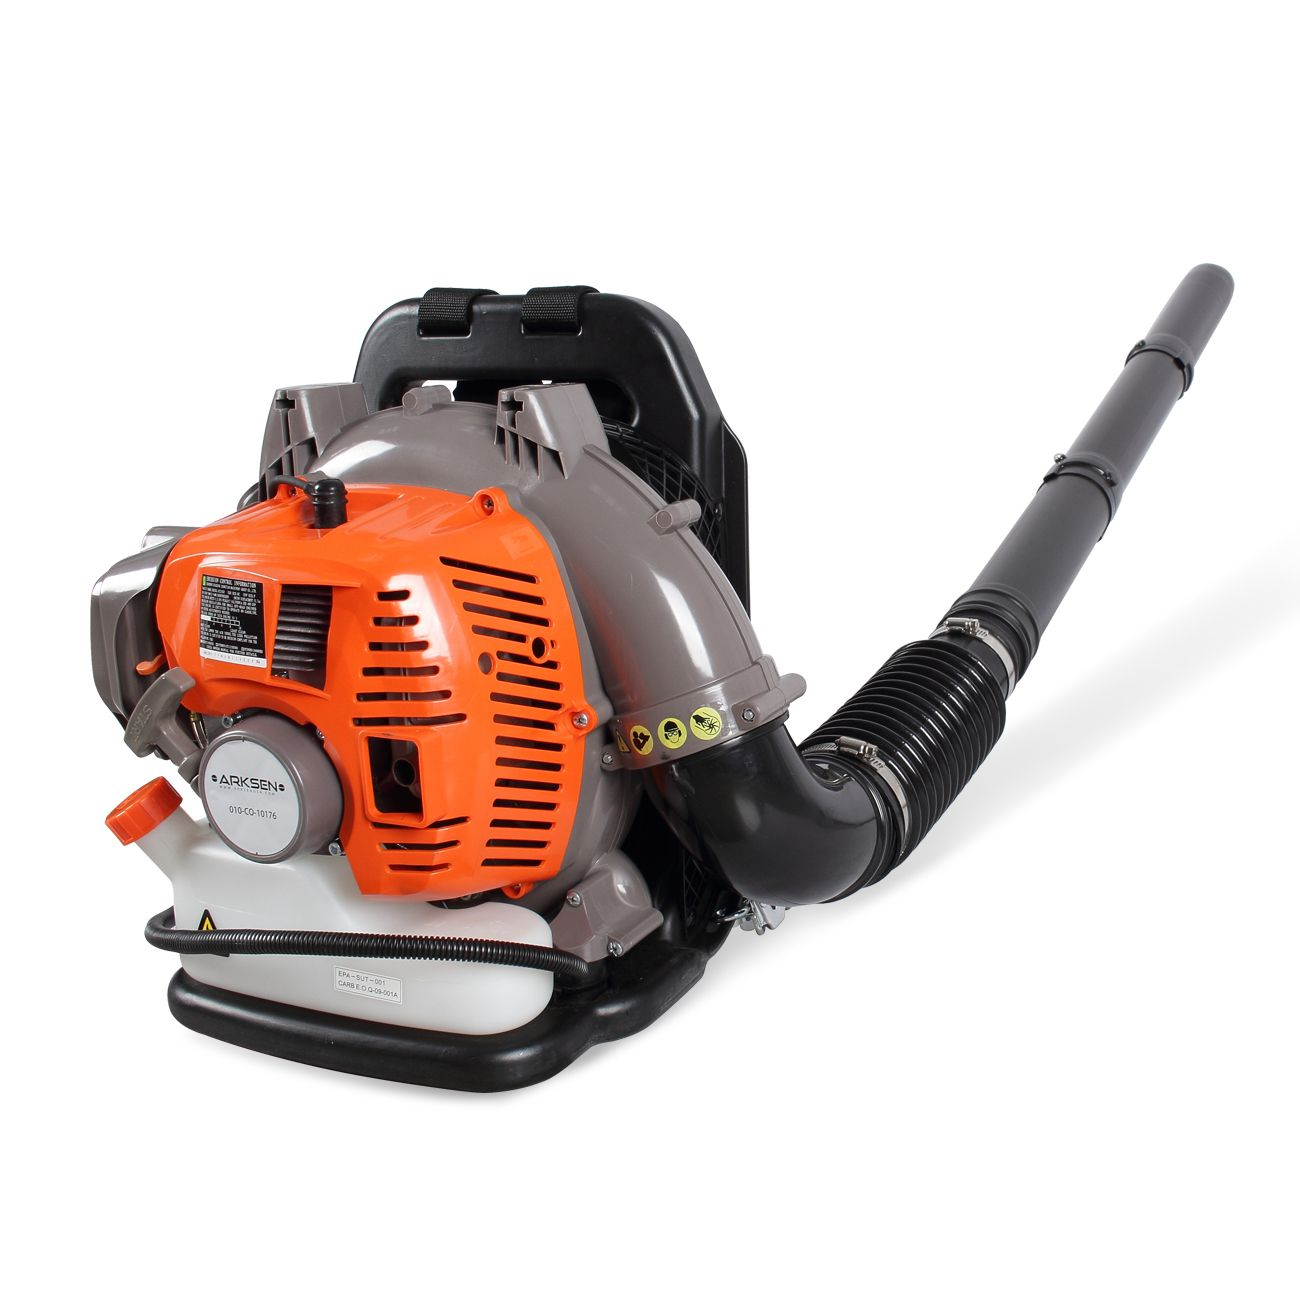 Recomeneded Arksen 52cc Gasoline Leaf Blower Backpack Garden 2 Cycle Gas Debris Duster Outdoor Backyard 2 Stroke Powered Epa Outdoor Backyard Leaf Blower Blowers